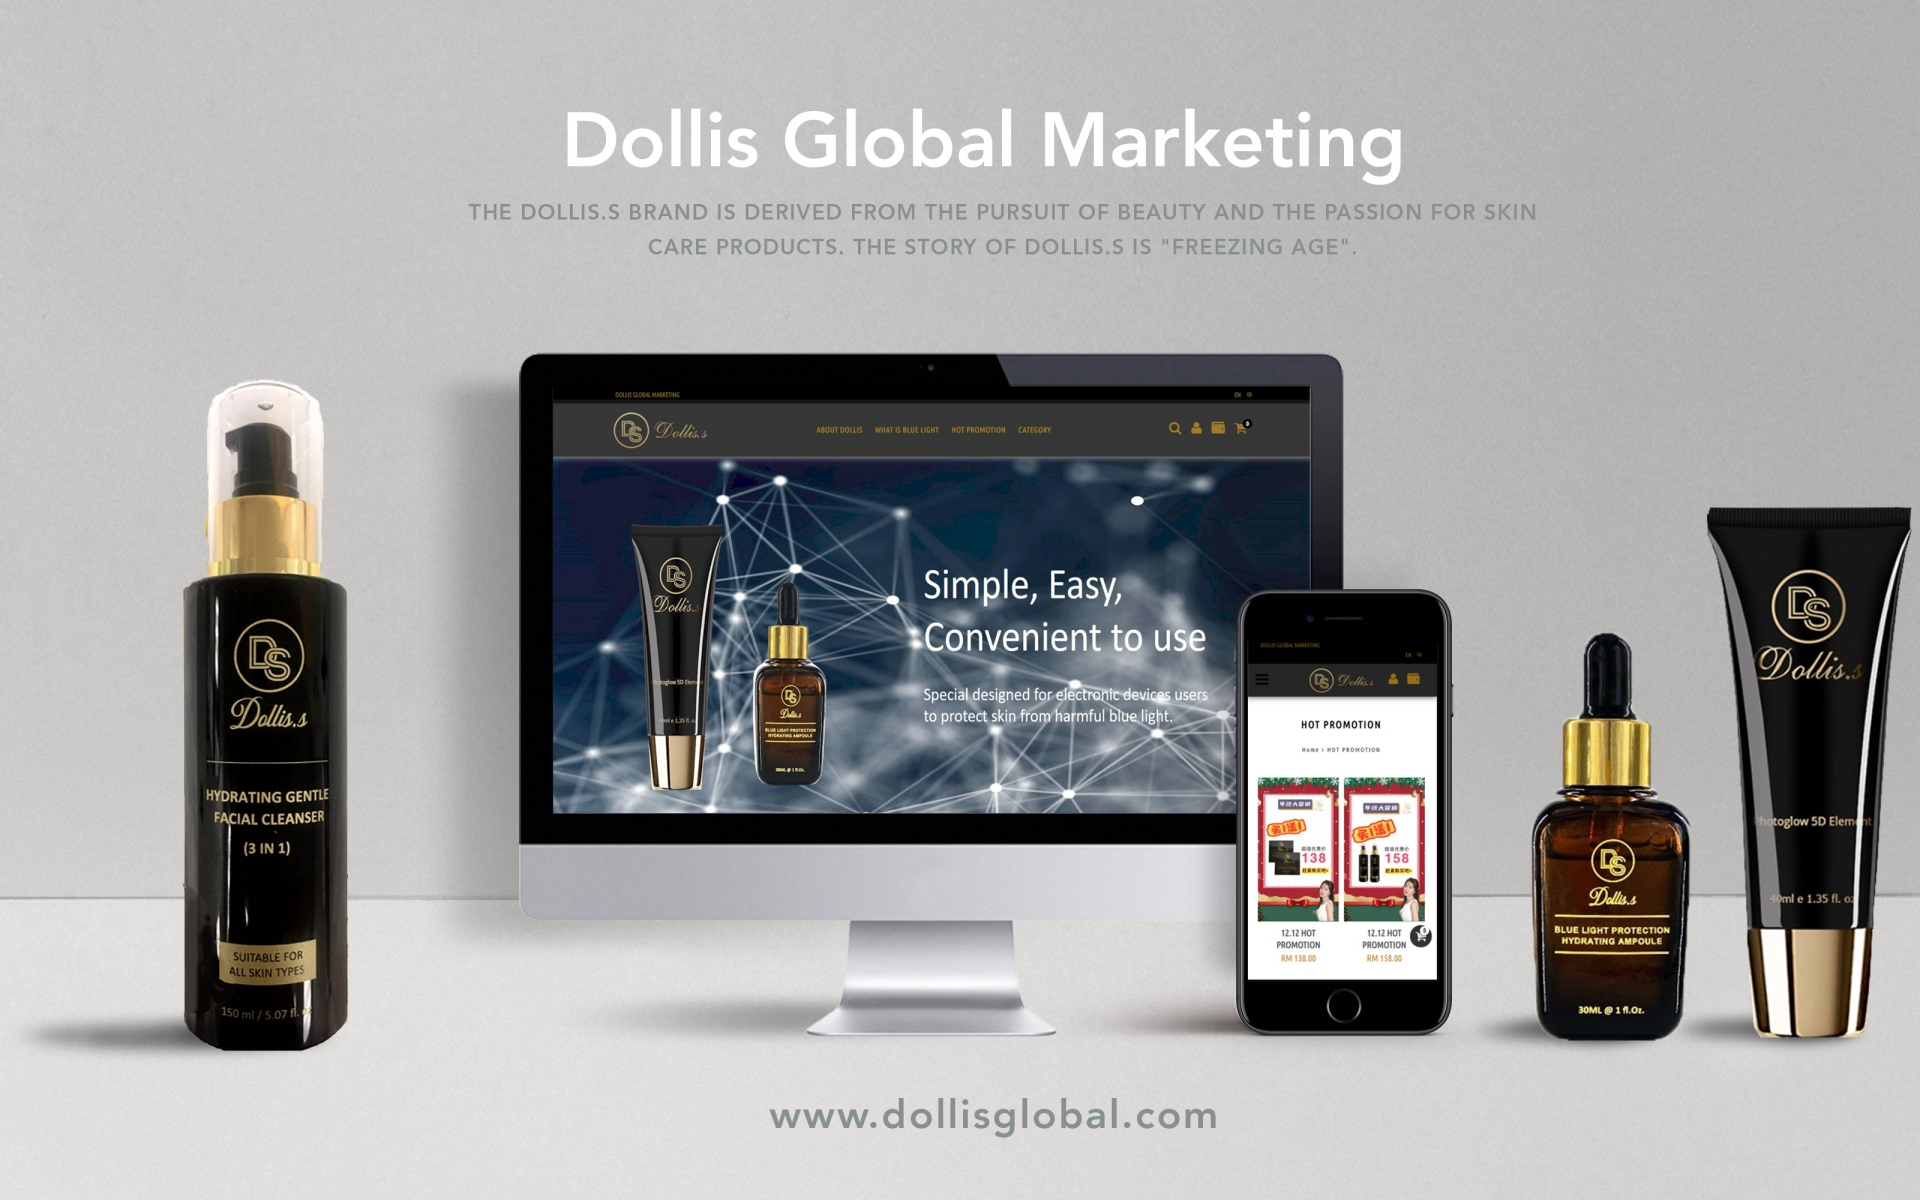 "<a href=""http://dollisglobal.com"" target=""_blank"">Dollis Global Marketing</a>"